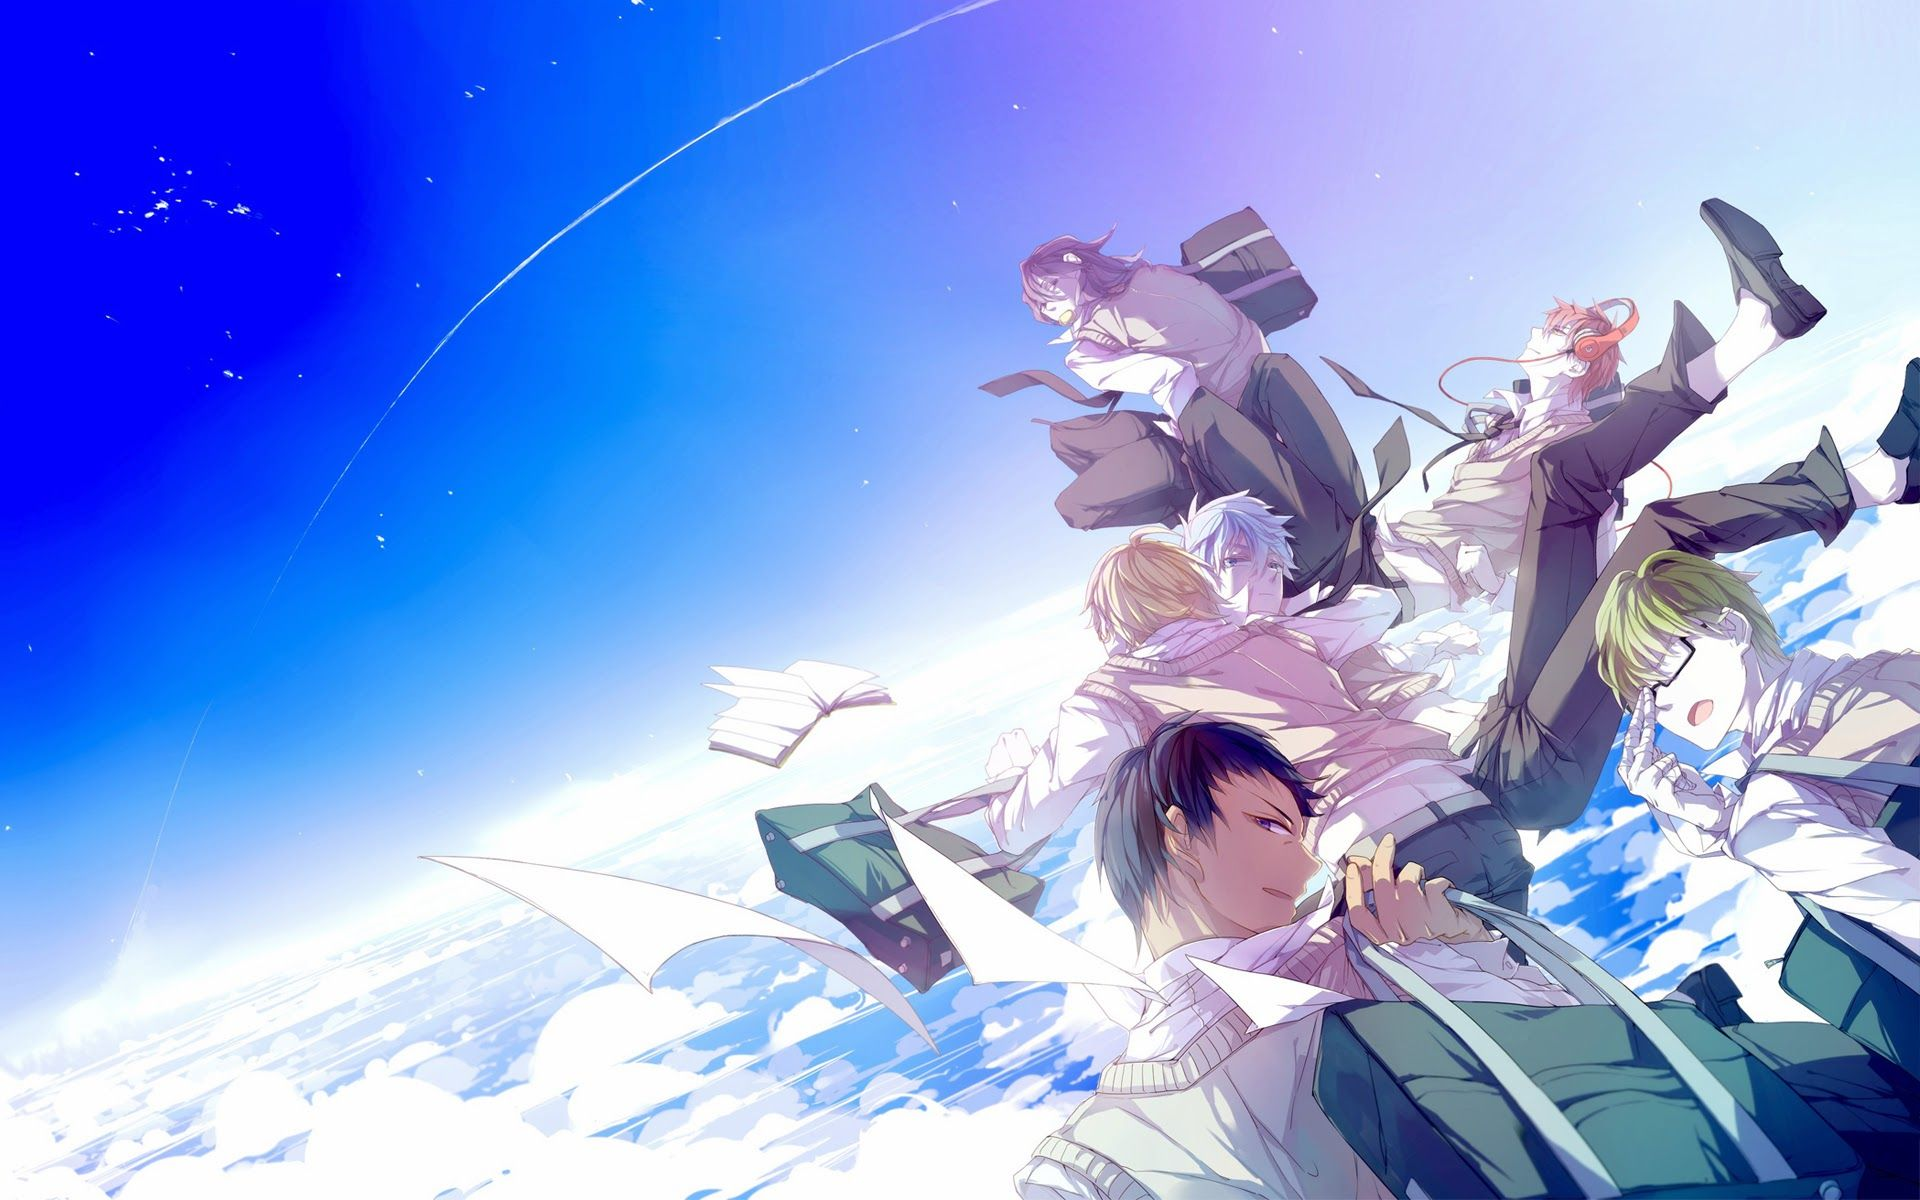 Kuroko no basuke hd wallpaper generation of miracles in their kuroko no basuke hd wallpaper generation of miracles in their school uniform voltagebd Choice Image